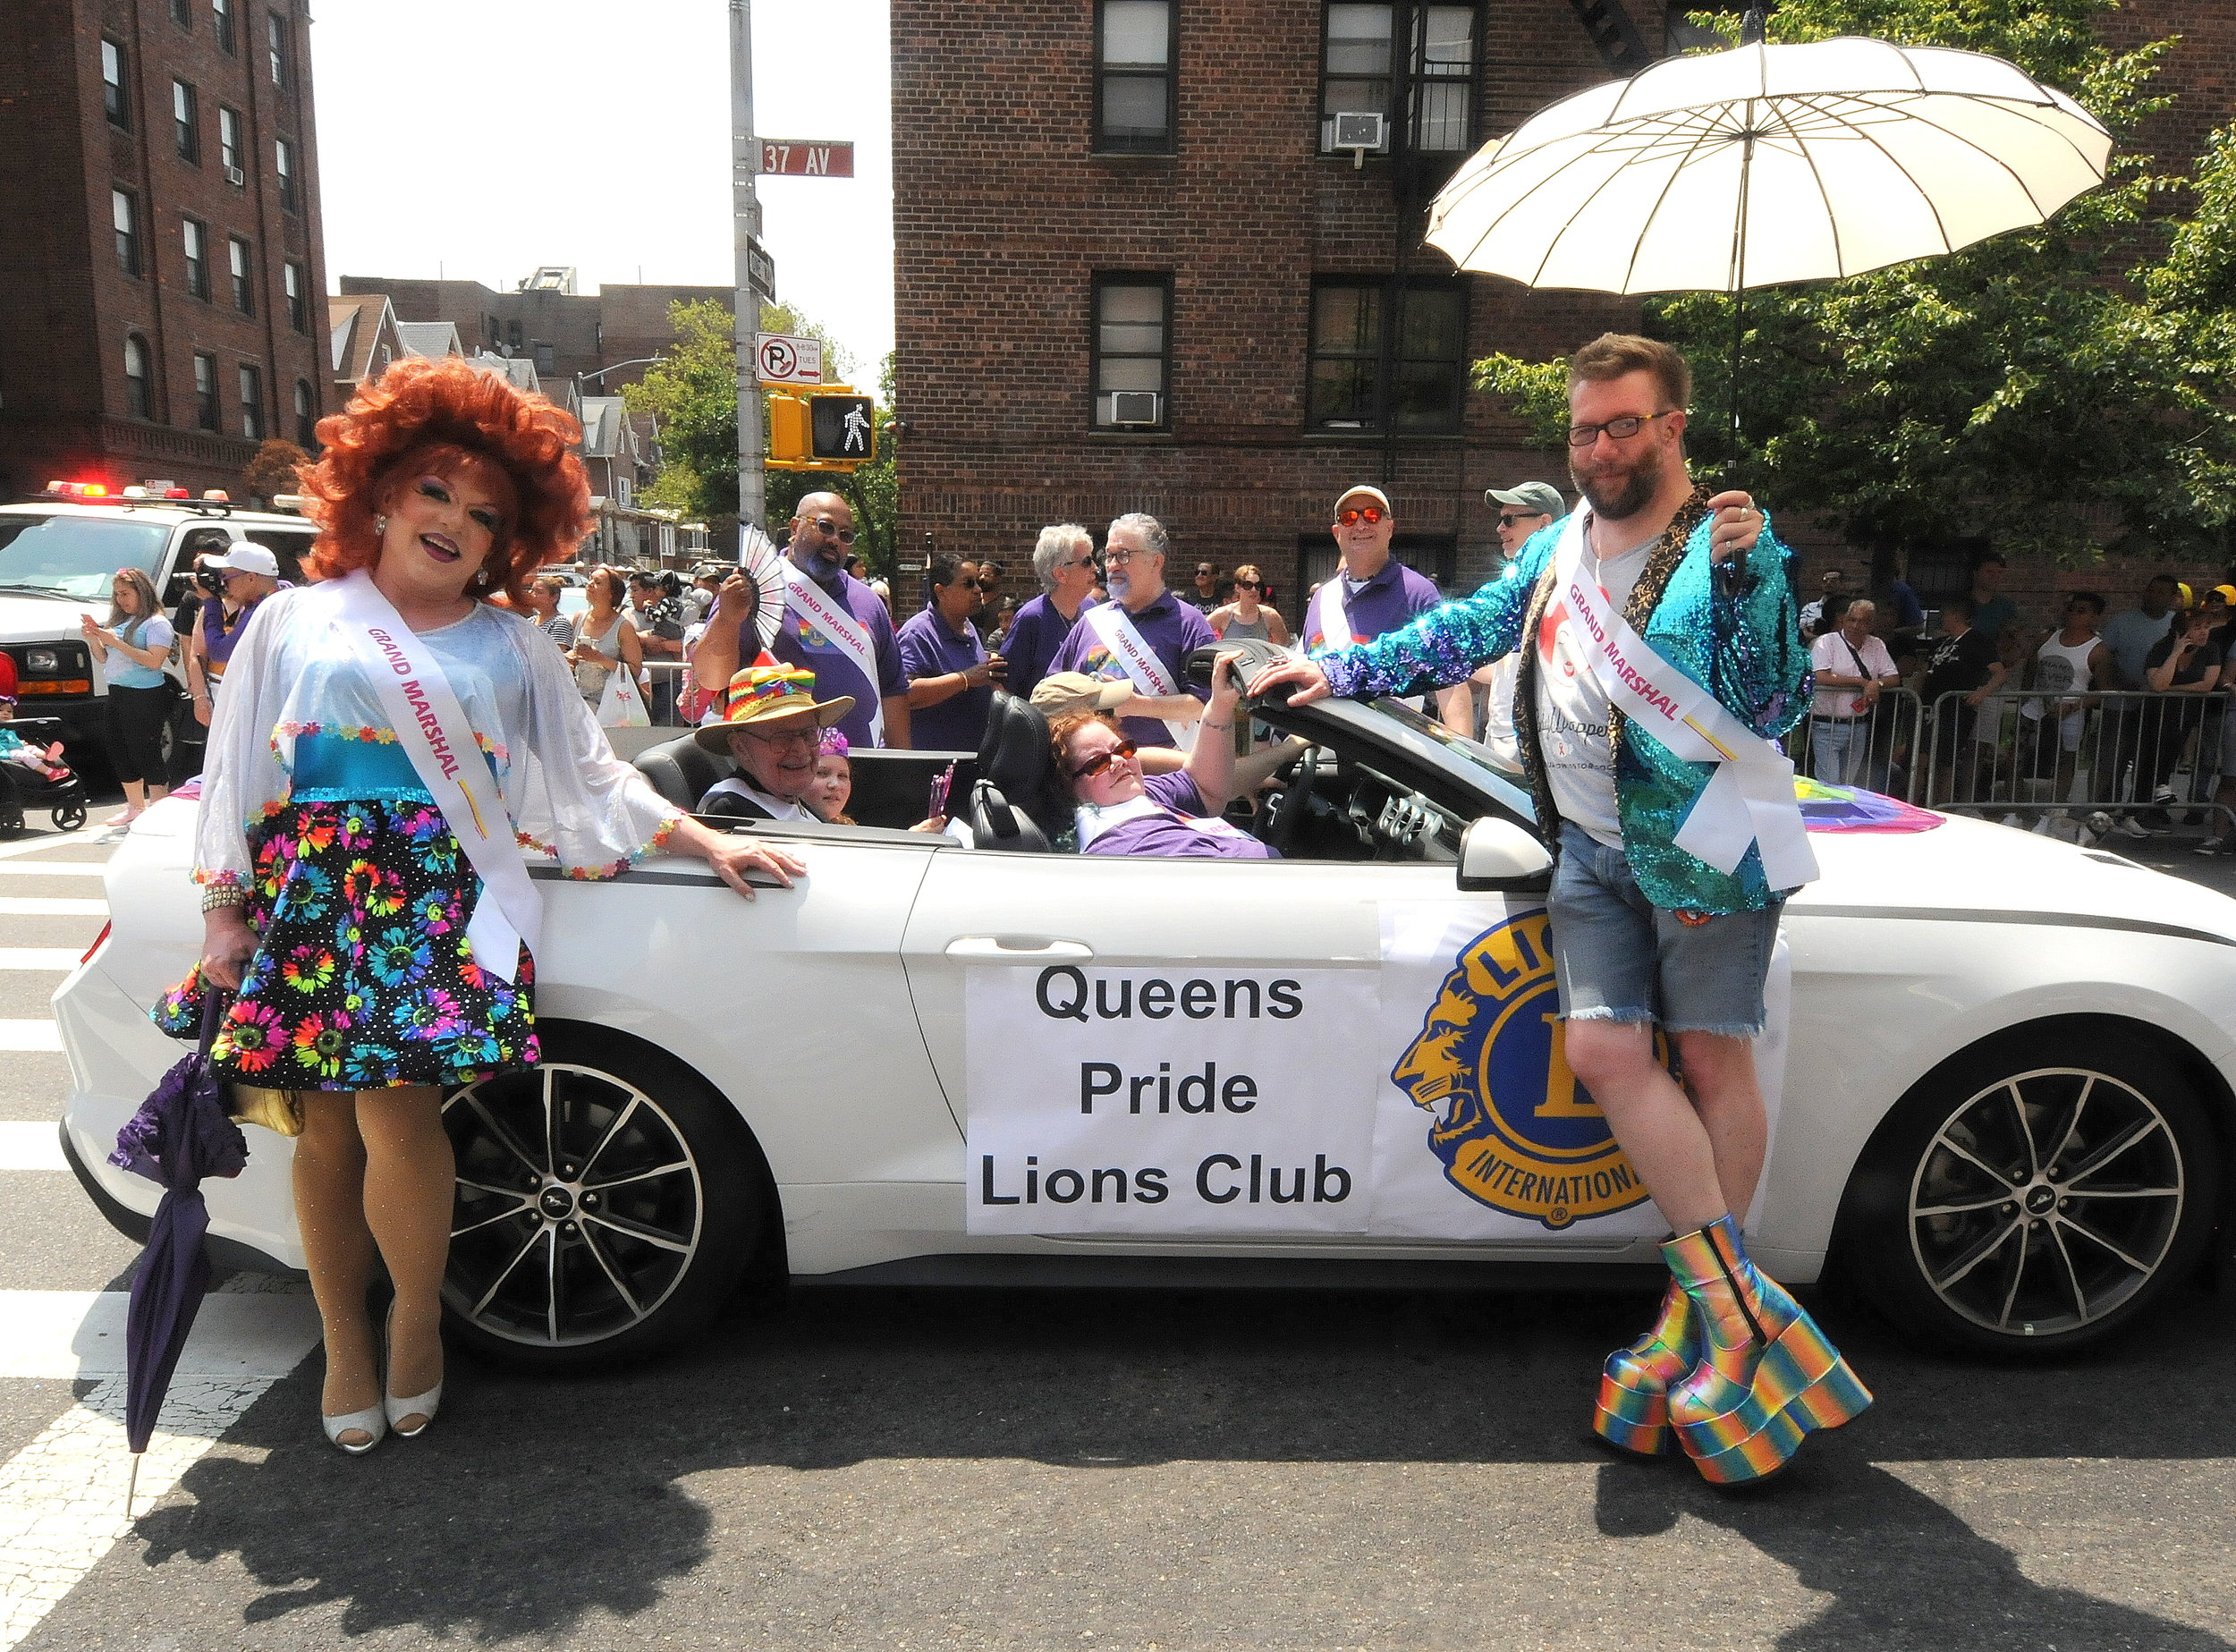 The Queens Pride Lions Club.